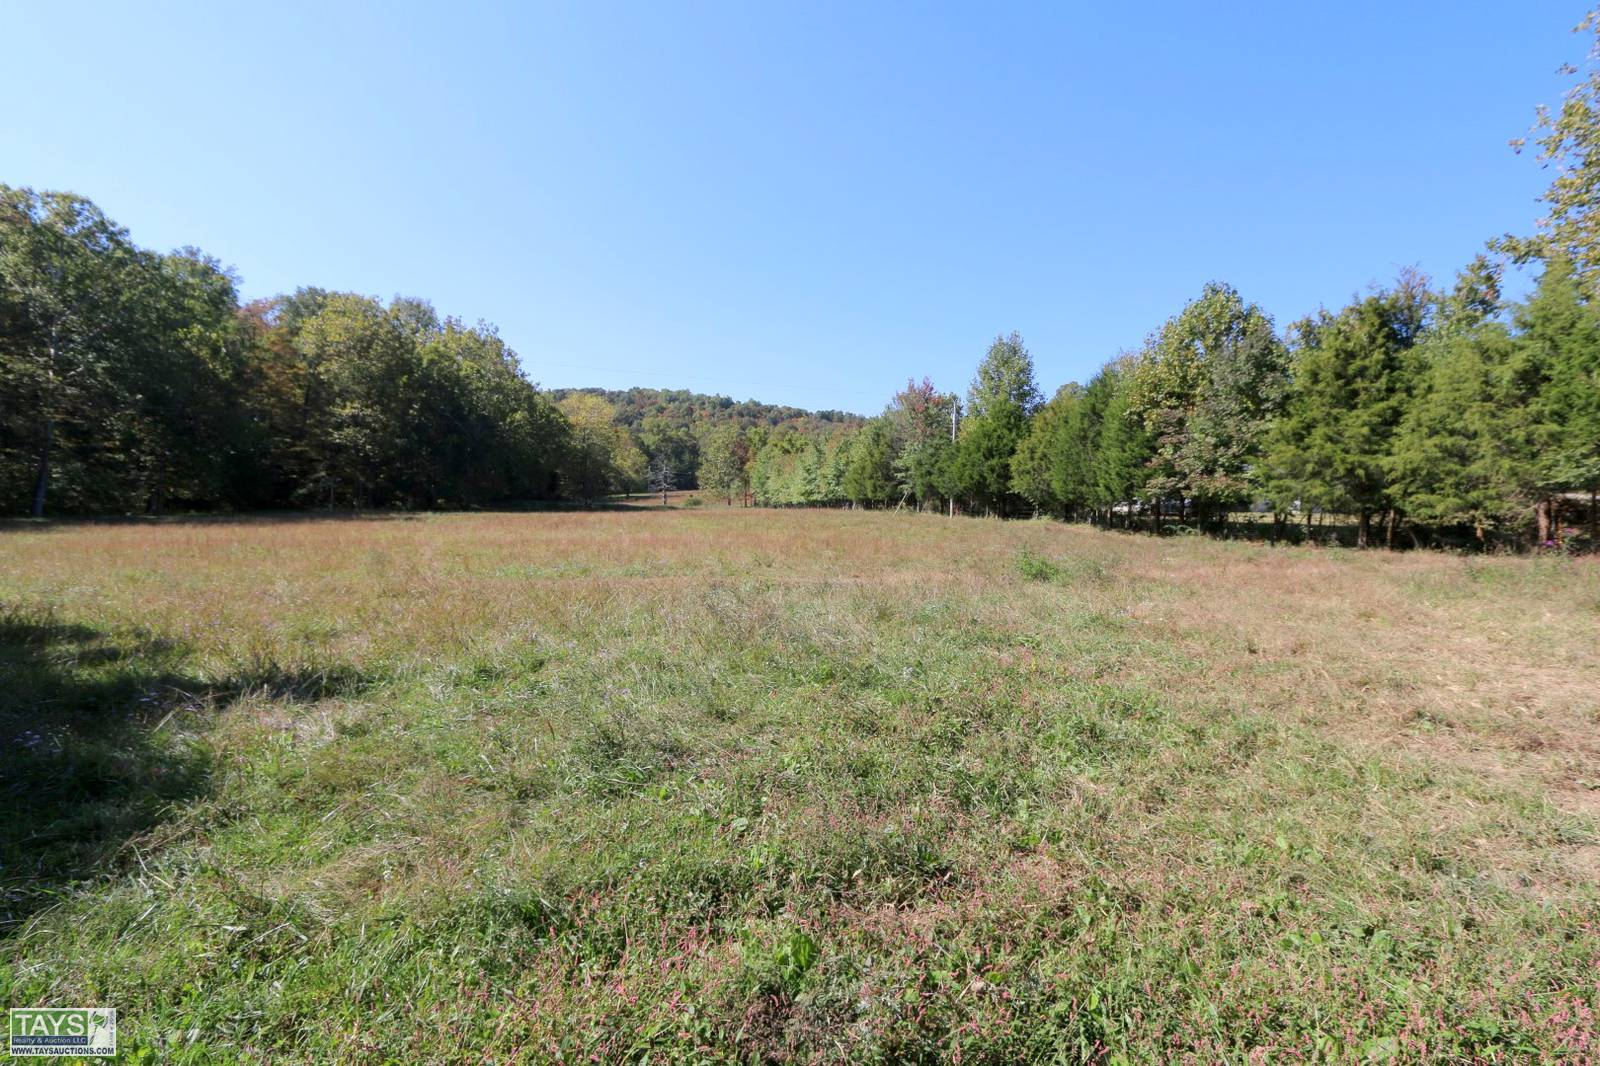 ONLINE ABSOLUTE AUCTION: 3 BR / 2 BA HOME & OUTBUILDING ON 56.90 Ac± in 5 TRACTS